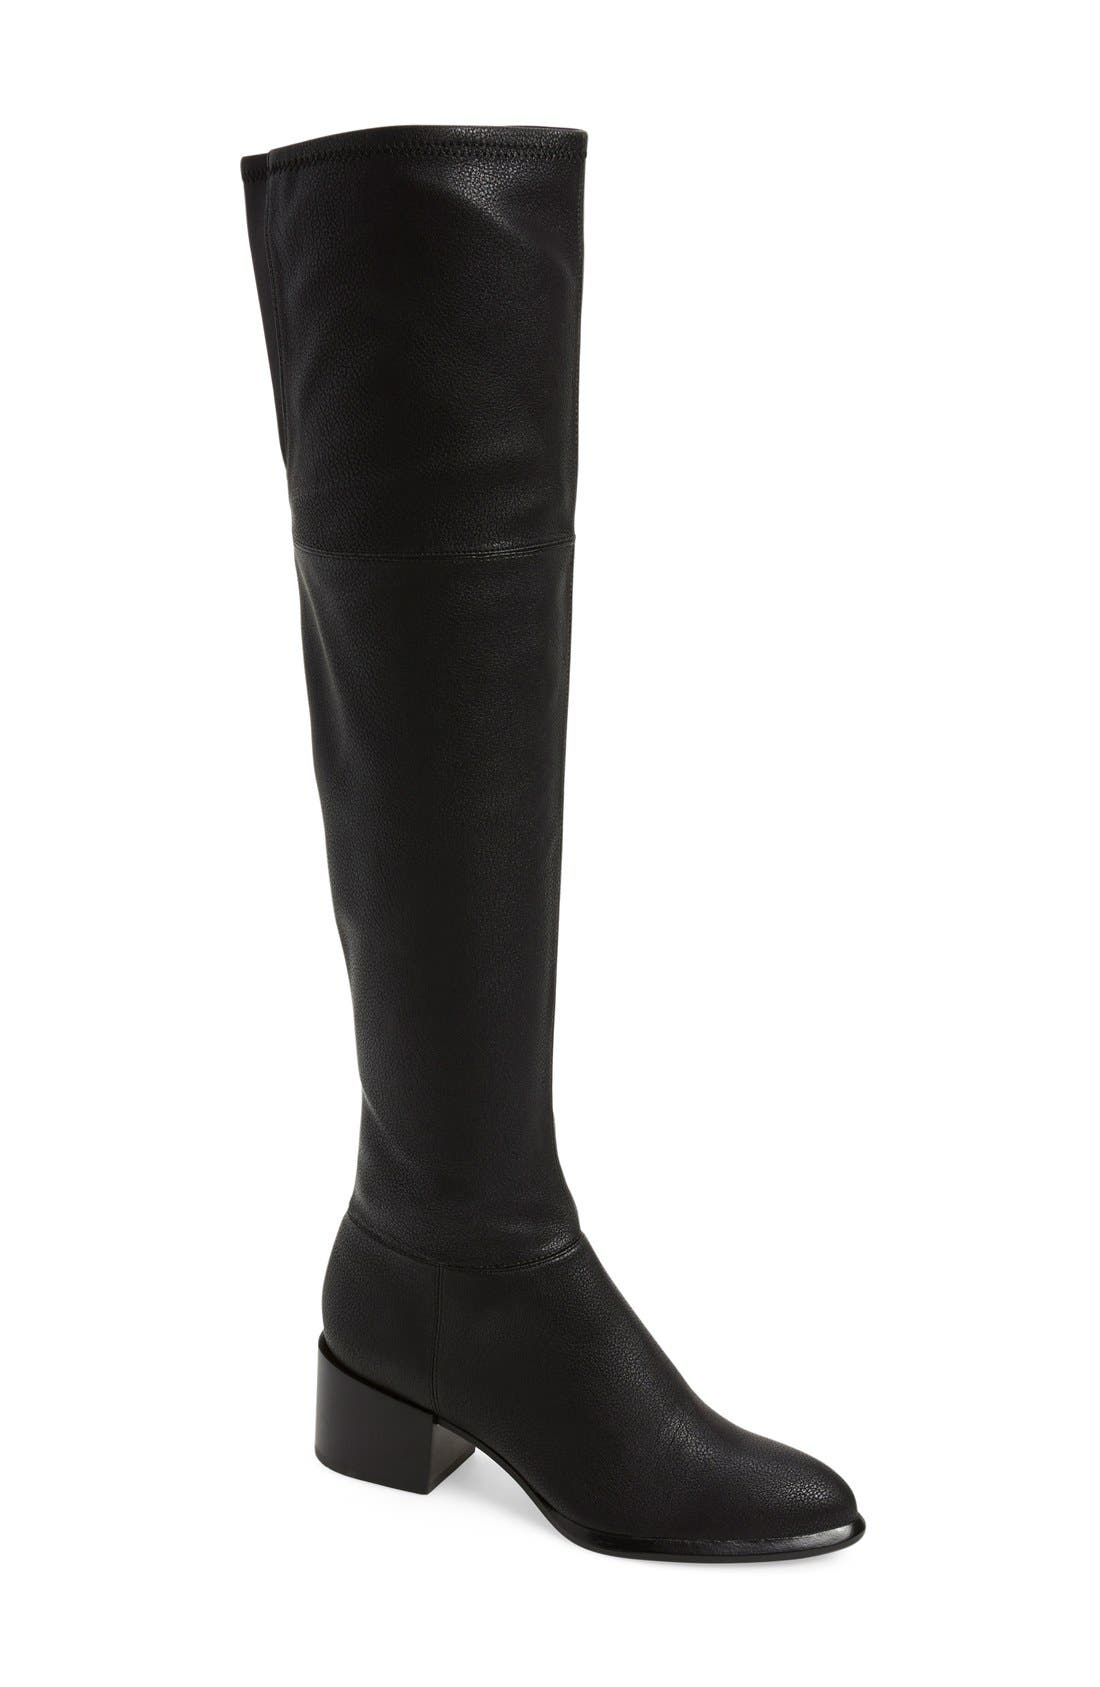 CALVIN KLEIN, 'Nani' Over The Knee Boot, Main thumbnail 1, color, 001